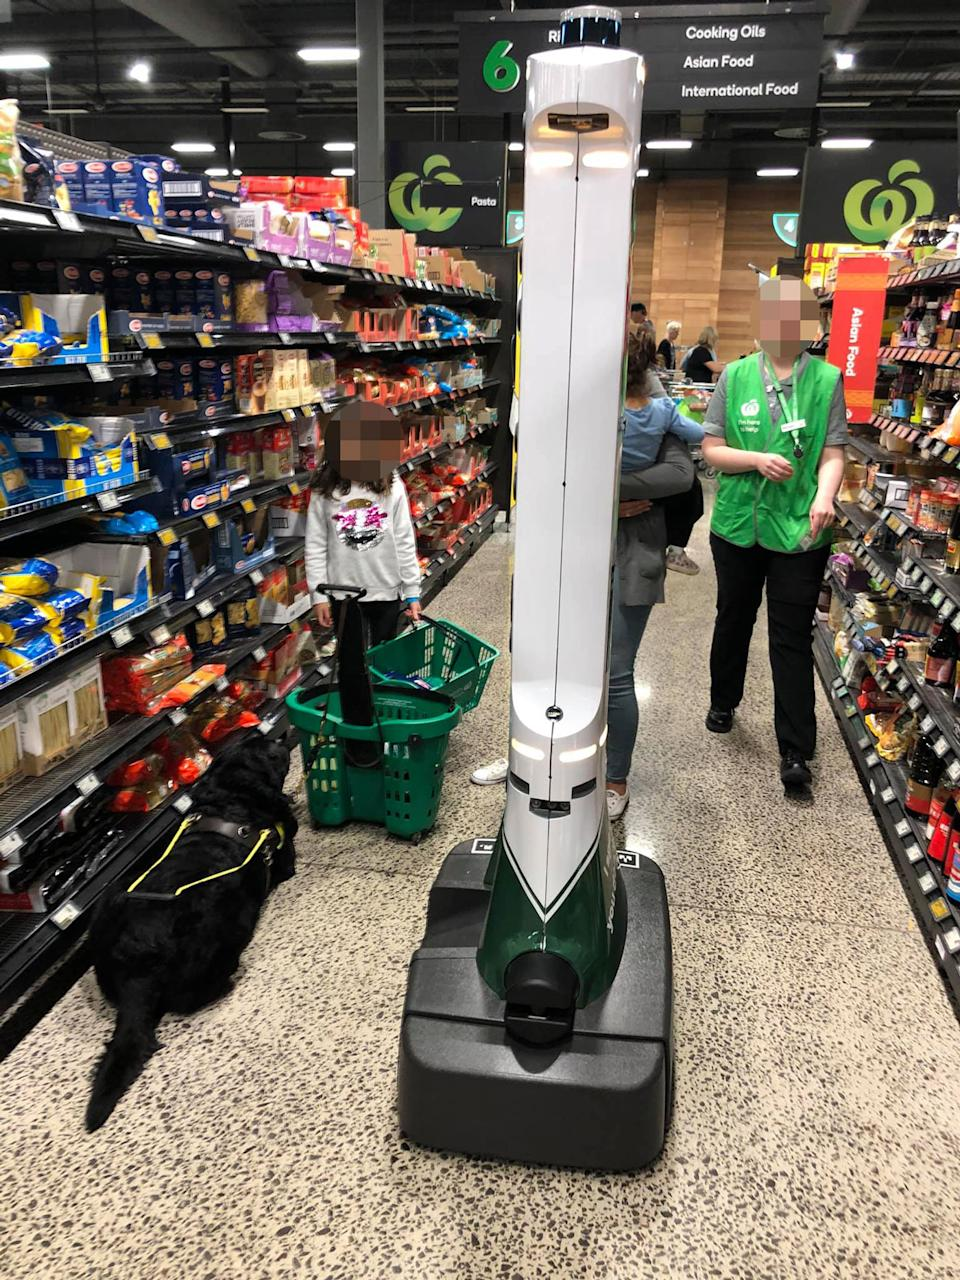 A Woolworths OH&S robot is pictured next to a black labrador guide dog in a supermarket aisle.